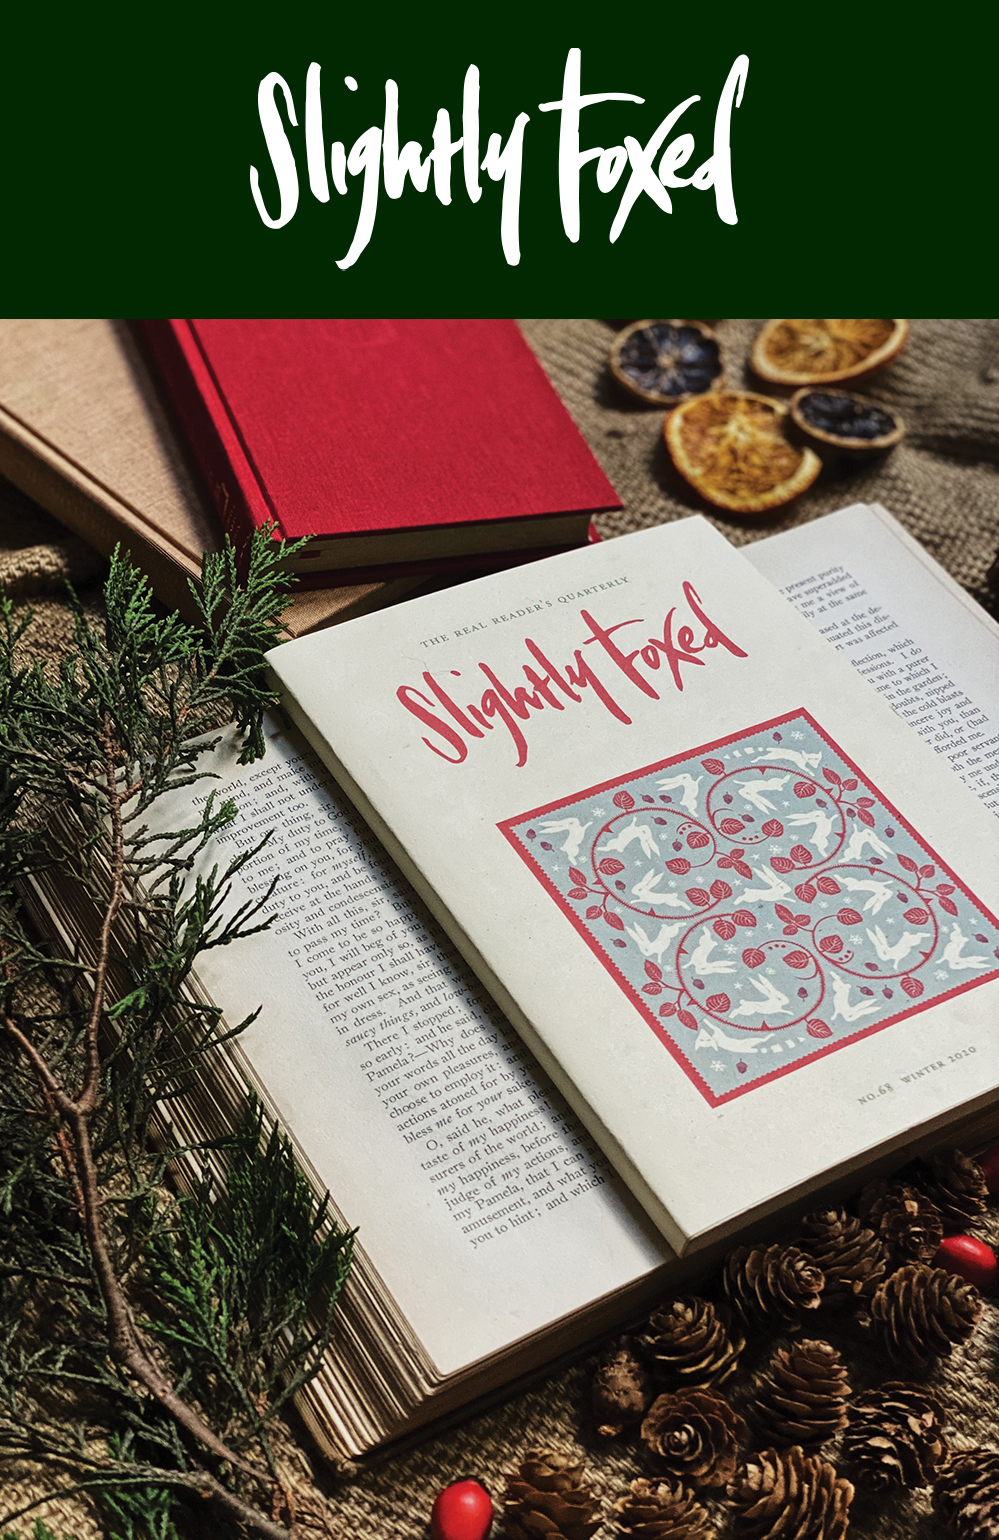 Winter Reading | New this Season from Slightly Foxed